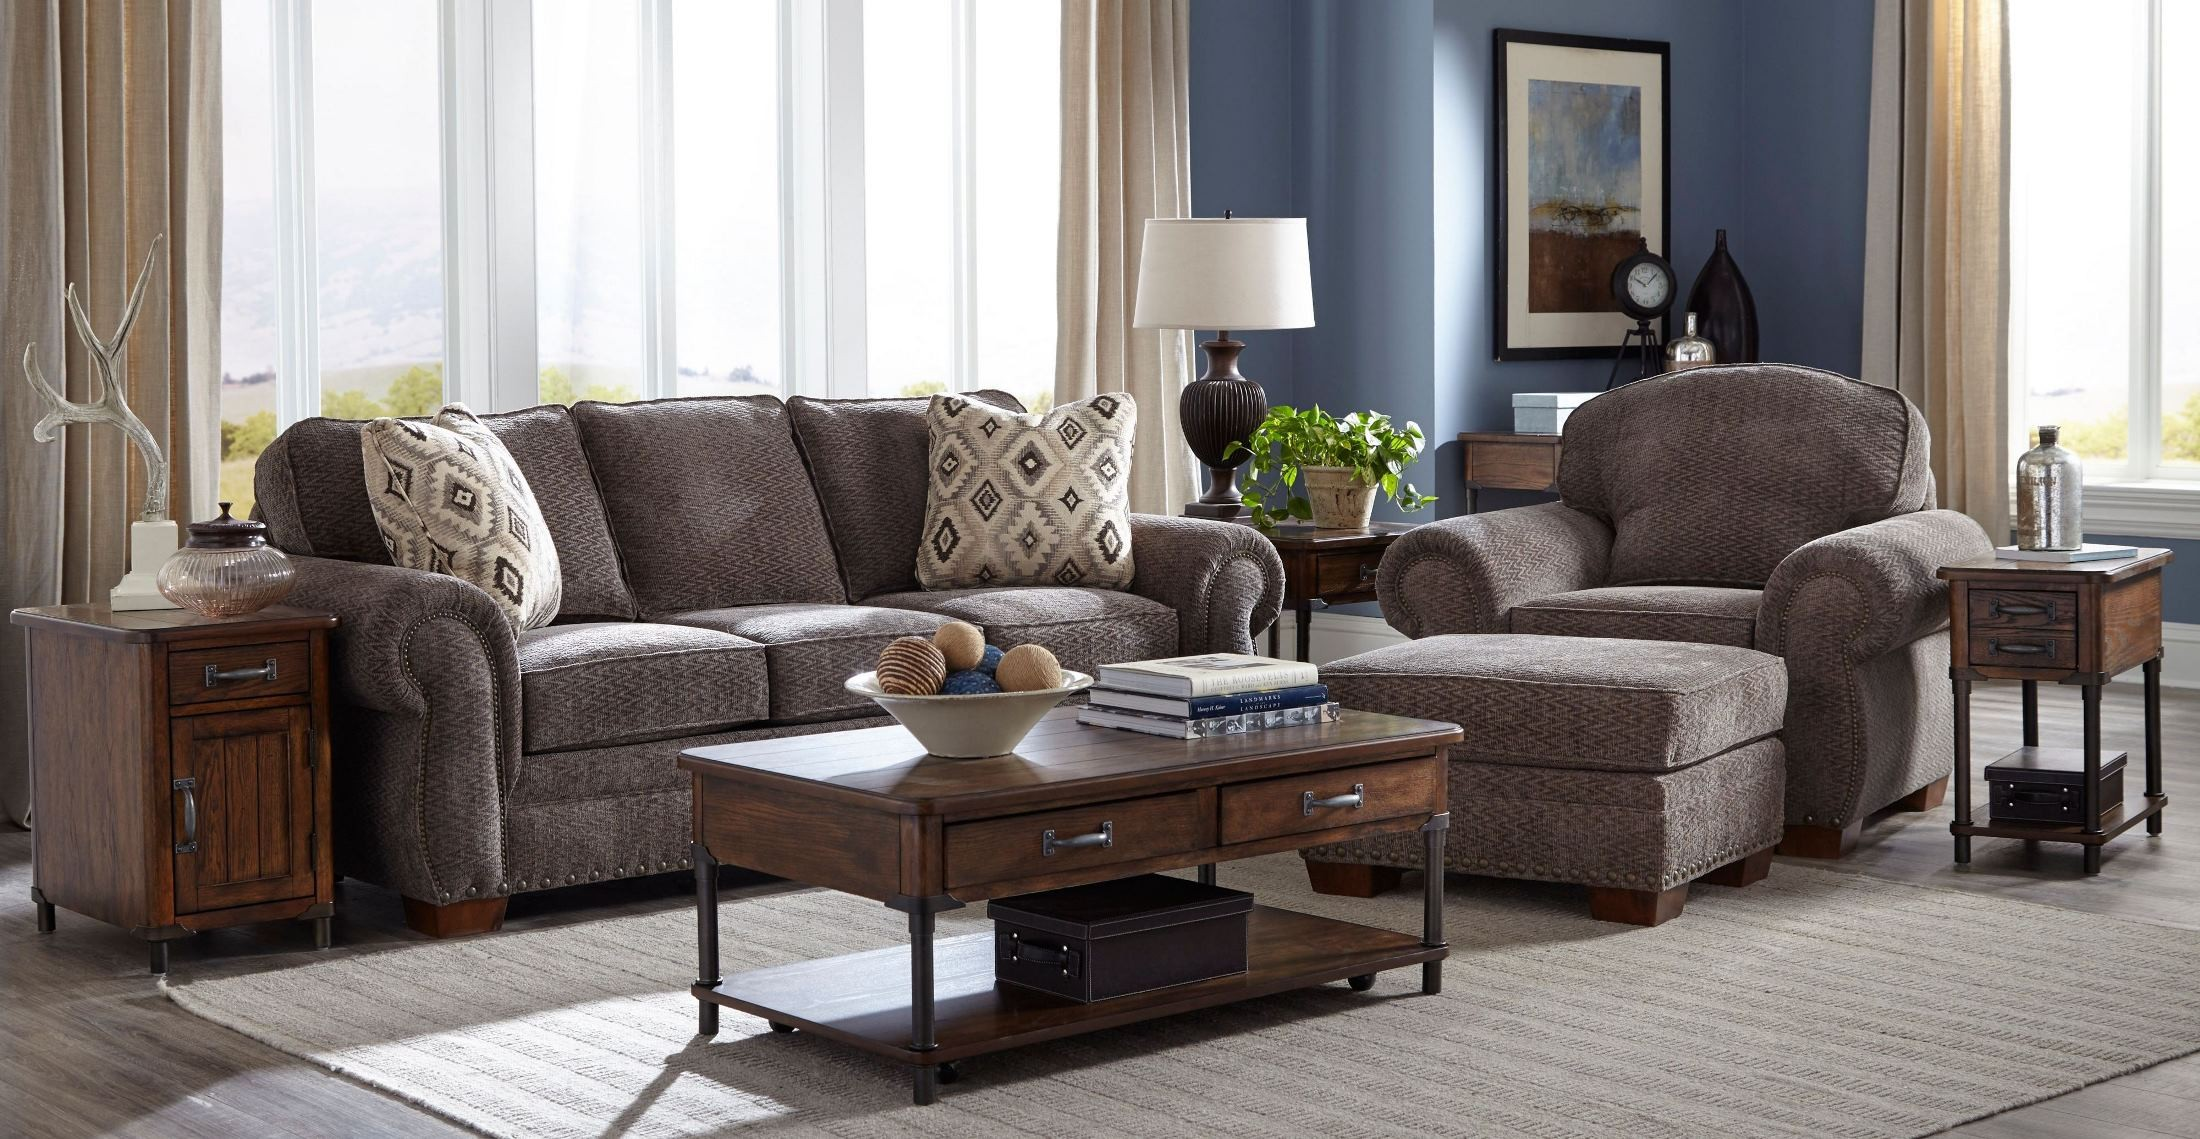 Cambridge Walnut Chenille Fabric Living Room Set 5054 3q2 4247 93 Broyhill